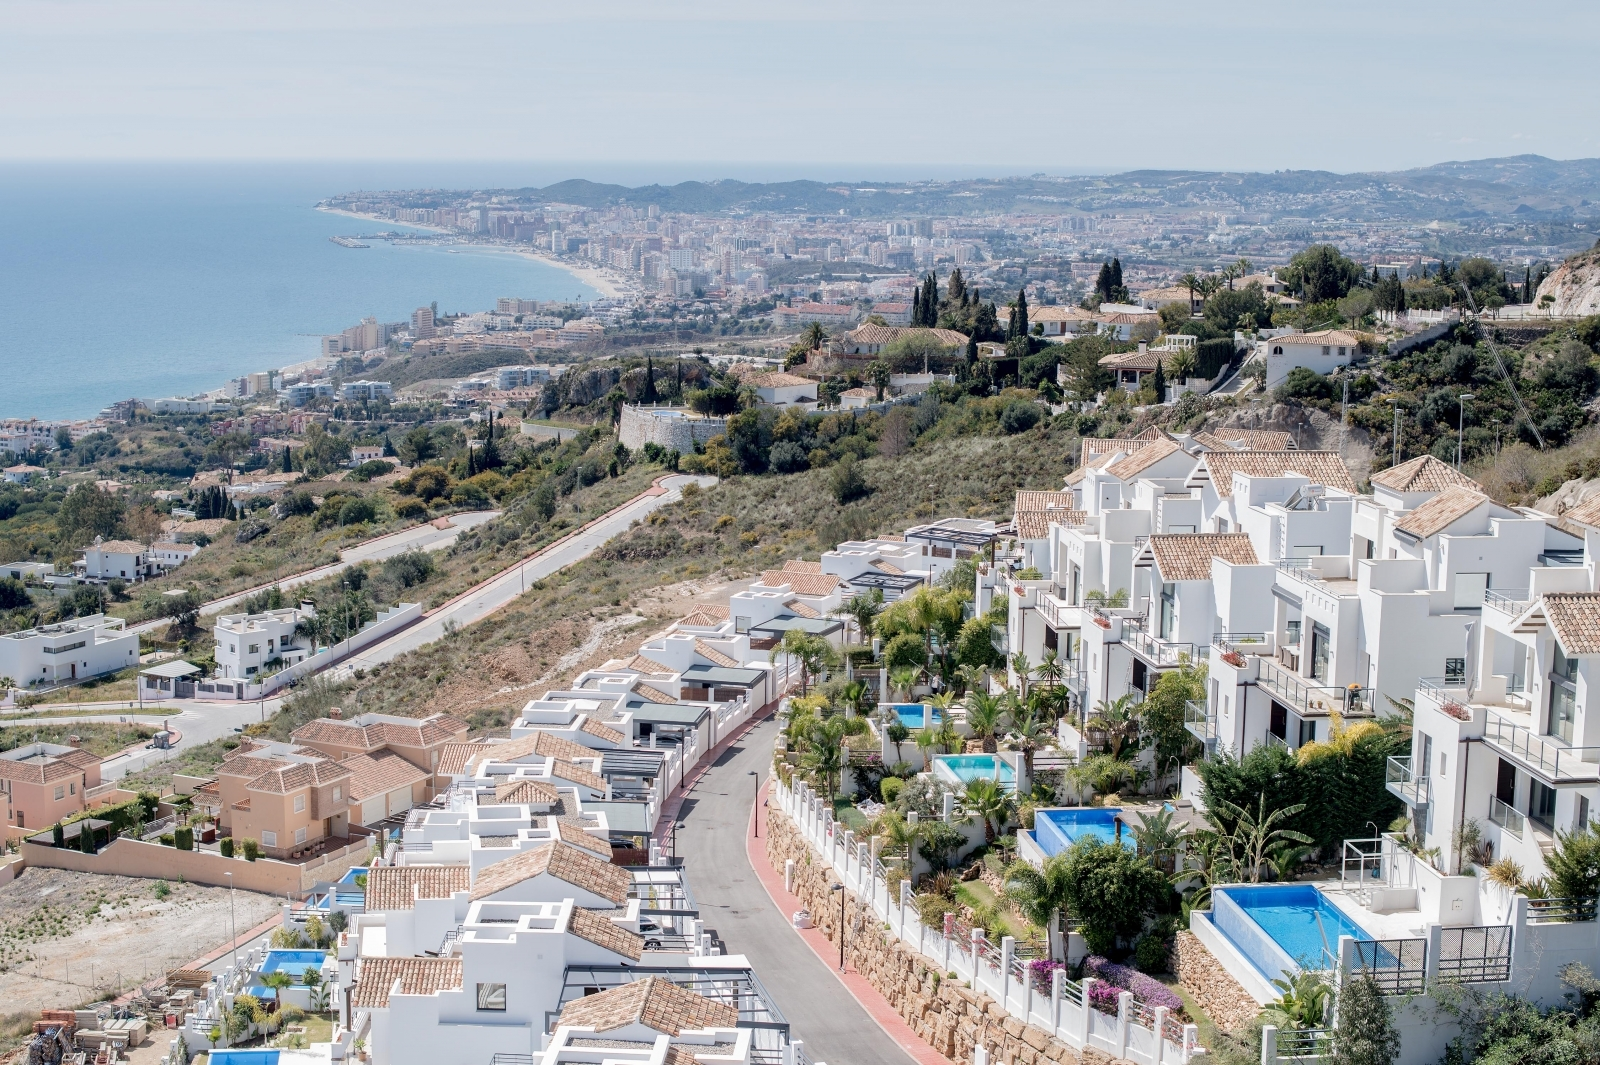 A top mafia boss has been arrested, known only as CP, has been arrested in holiday hotspot Benalmadena, on Spain's Costa del Sol